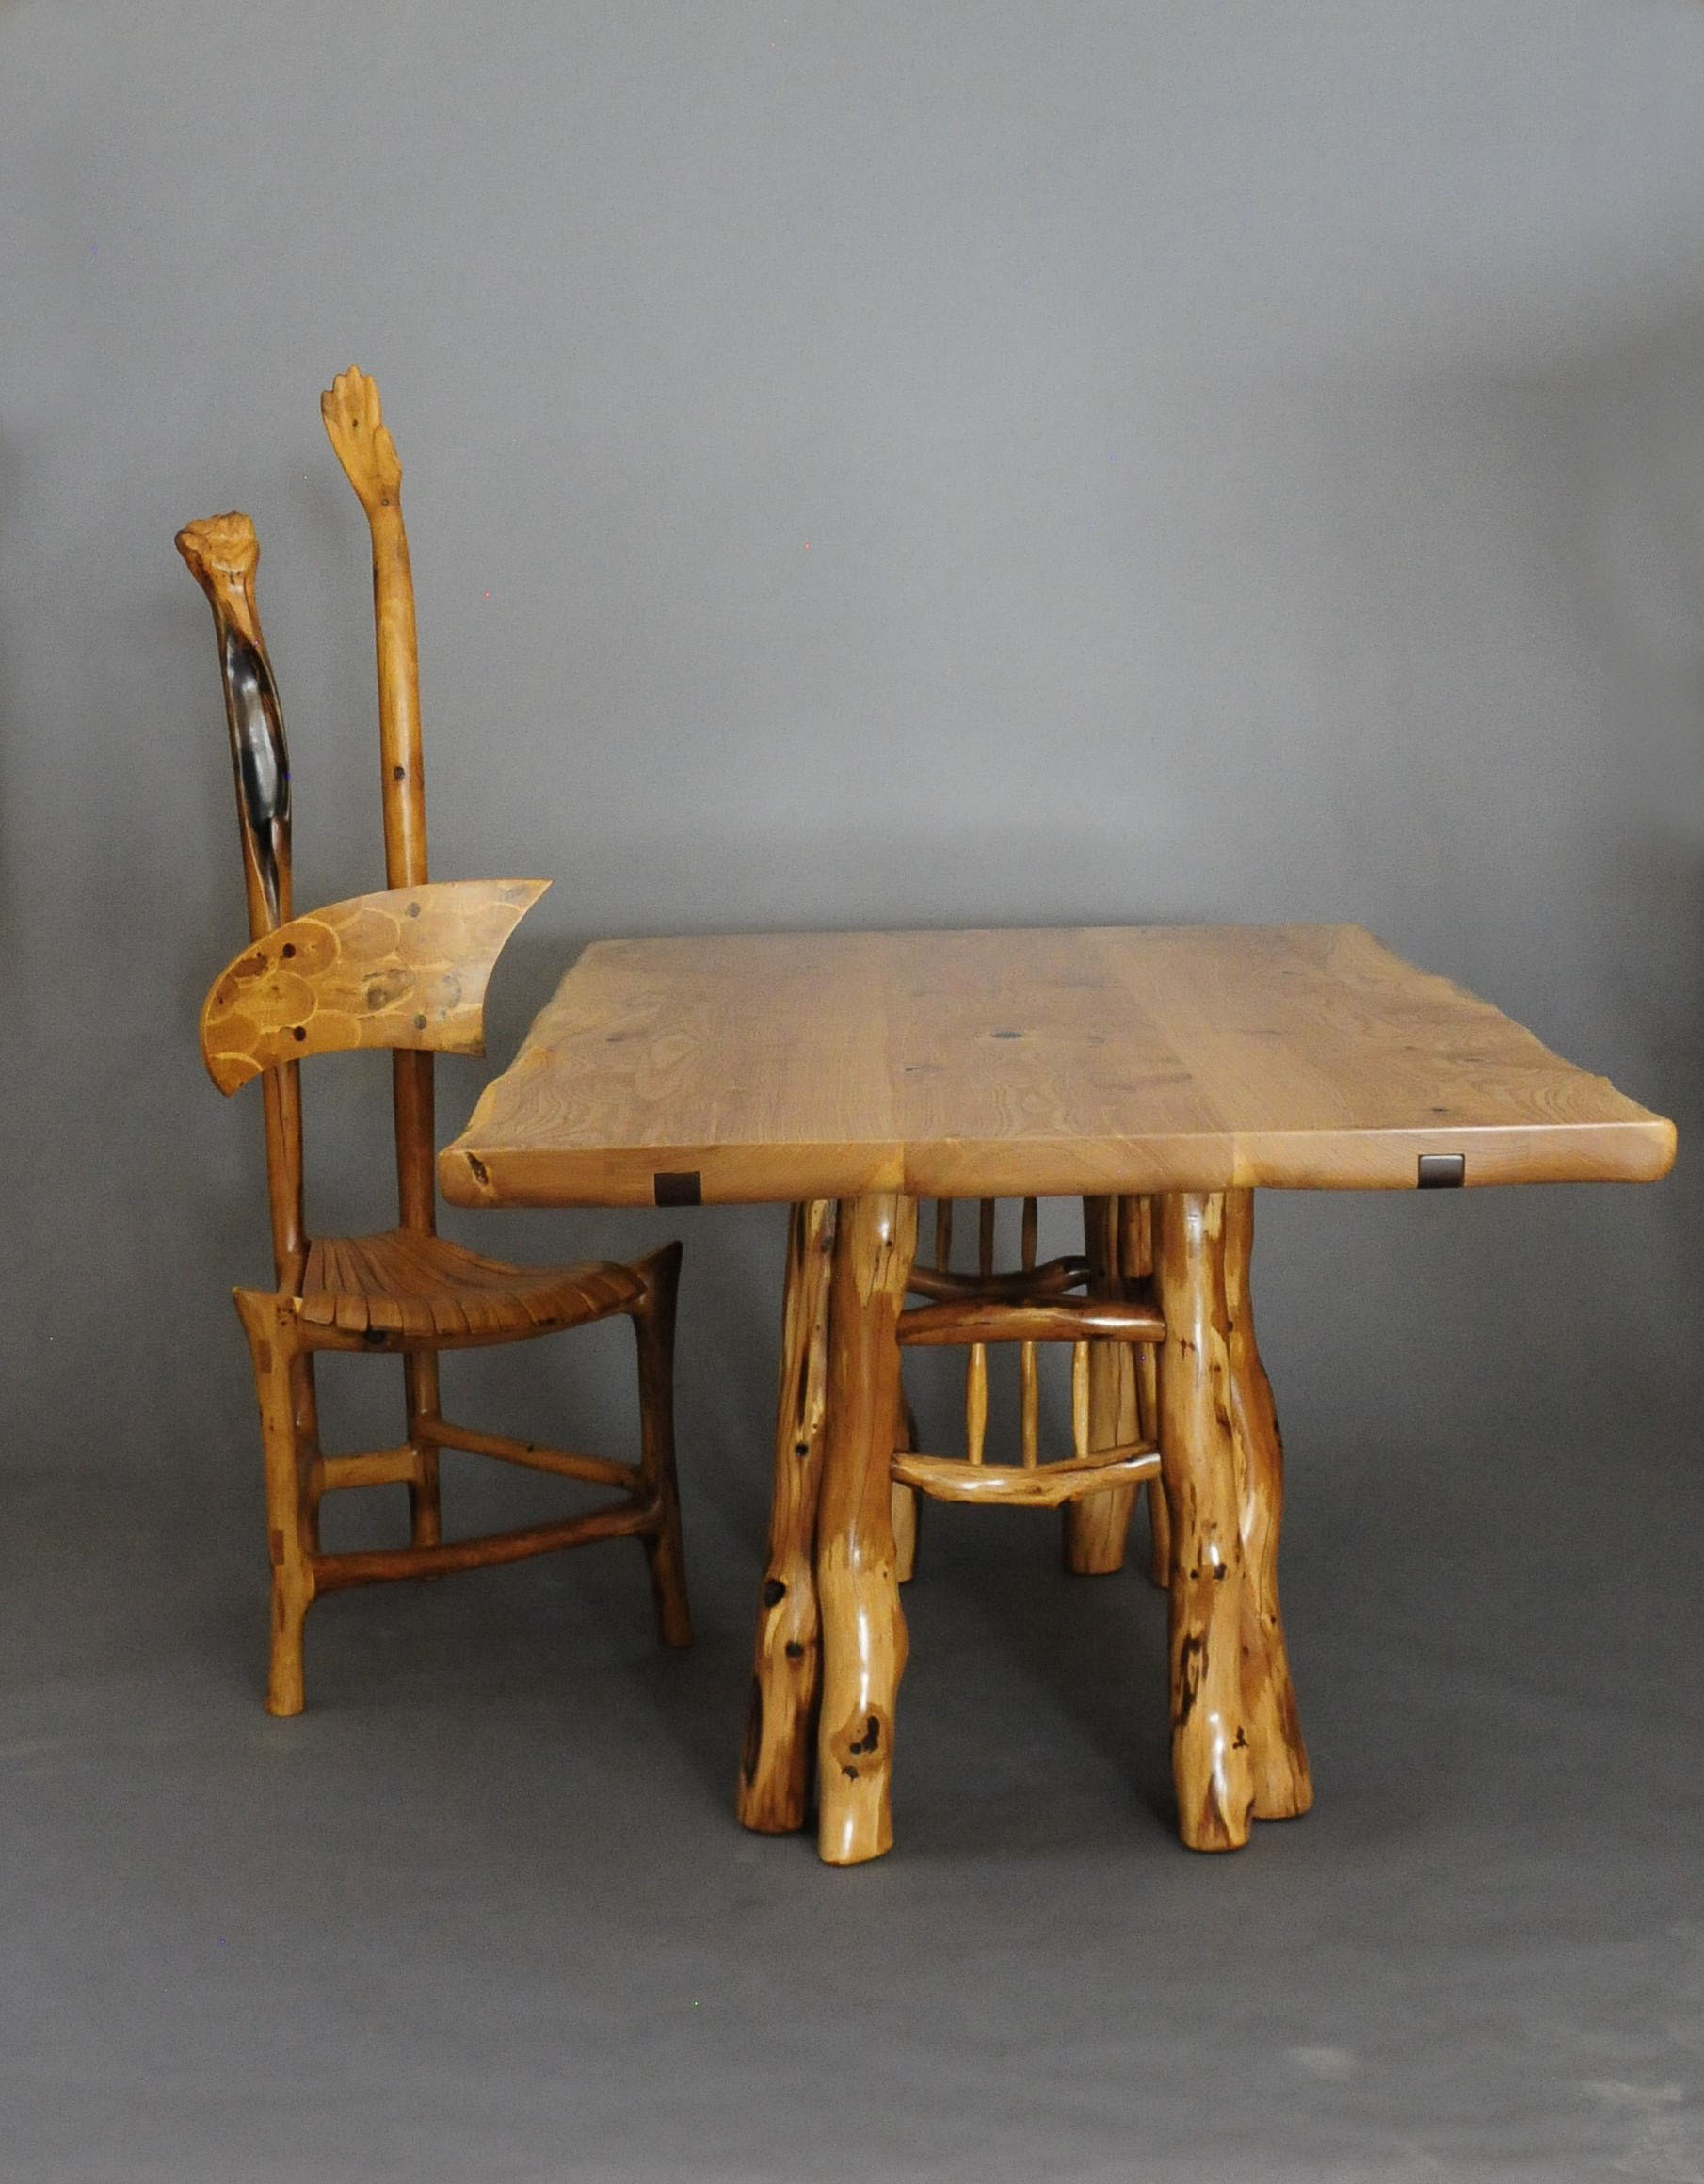 Ash Dining Table with Scrub Oak legs